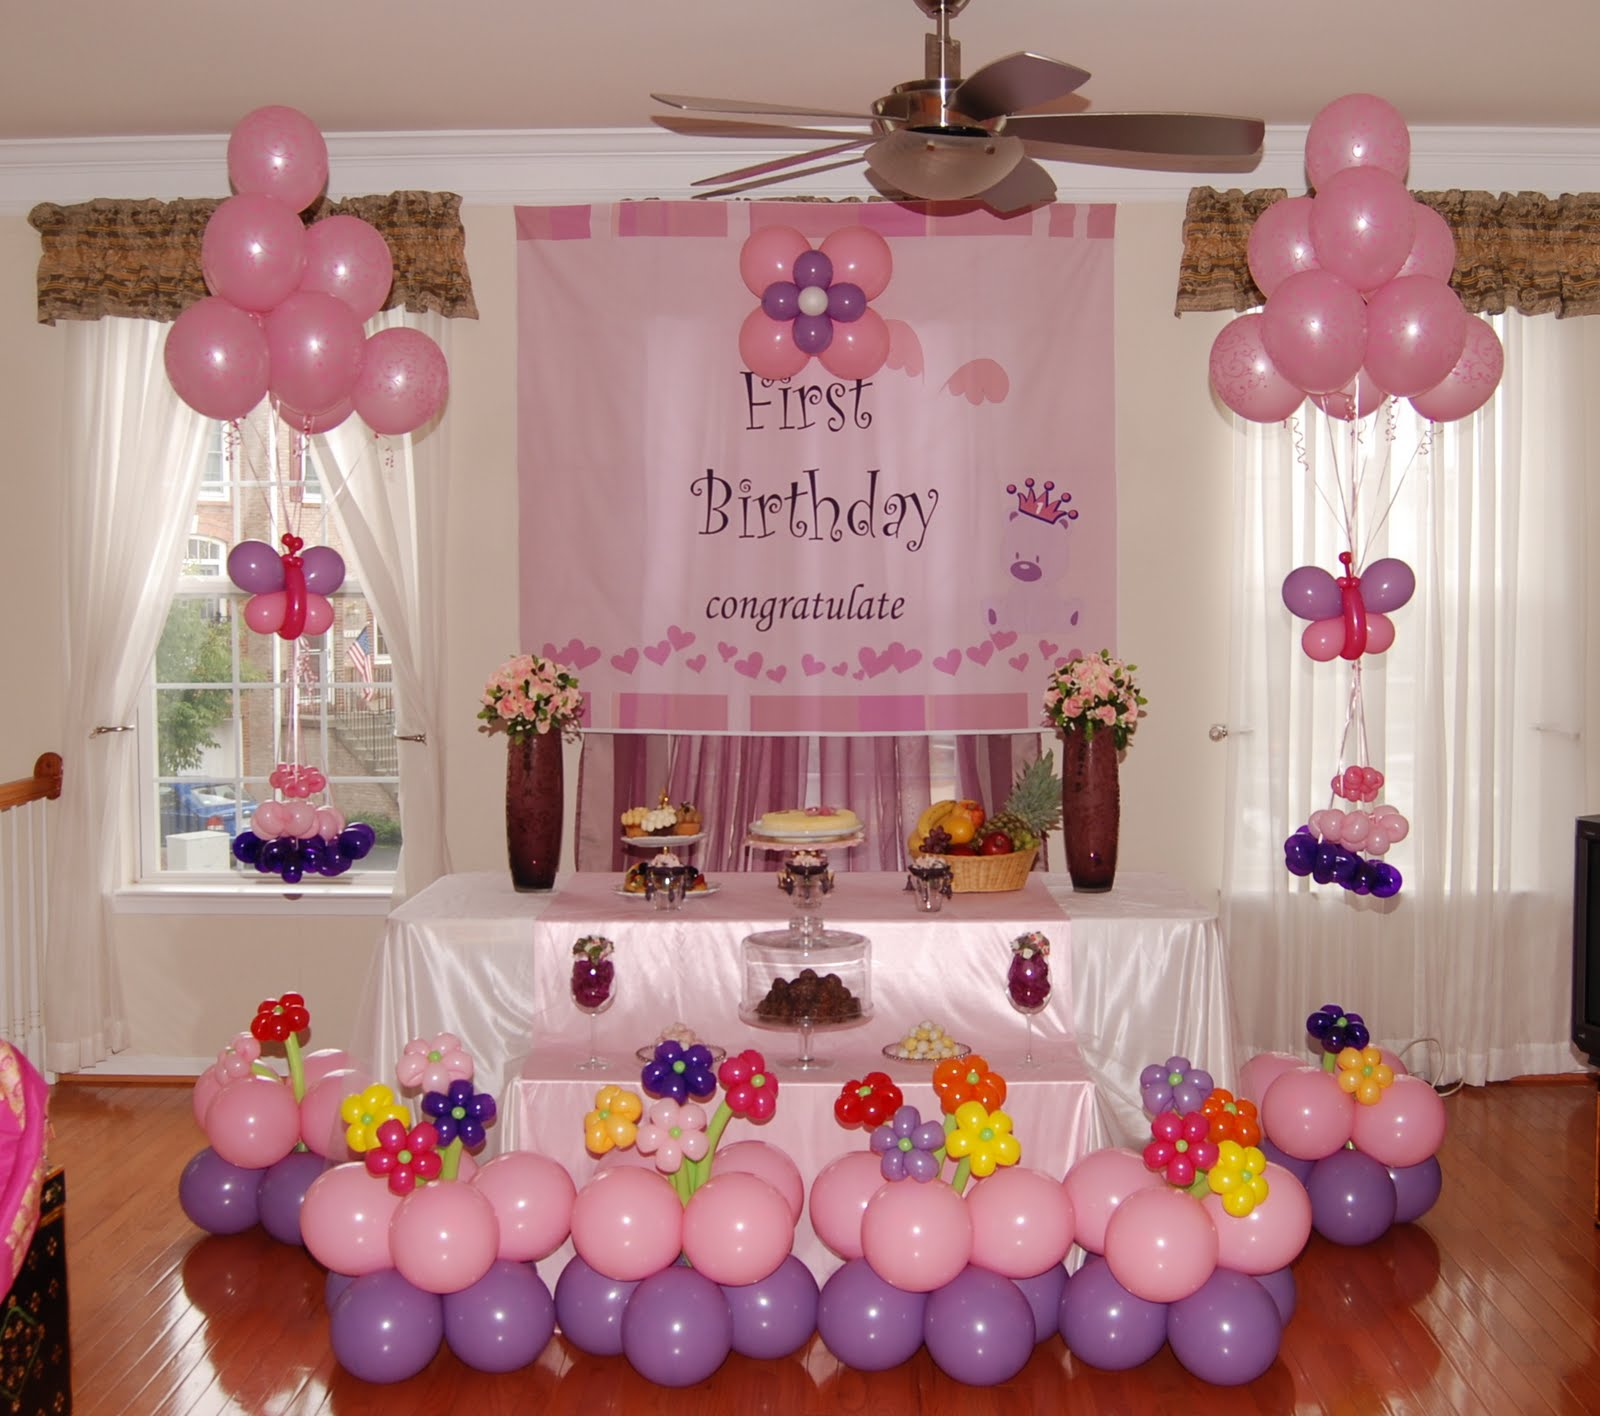 1st birthday party activities for kids ; cake-table